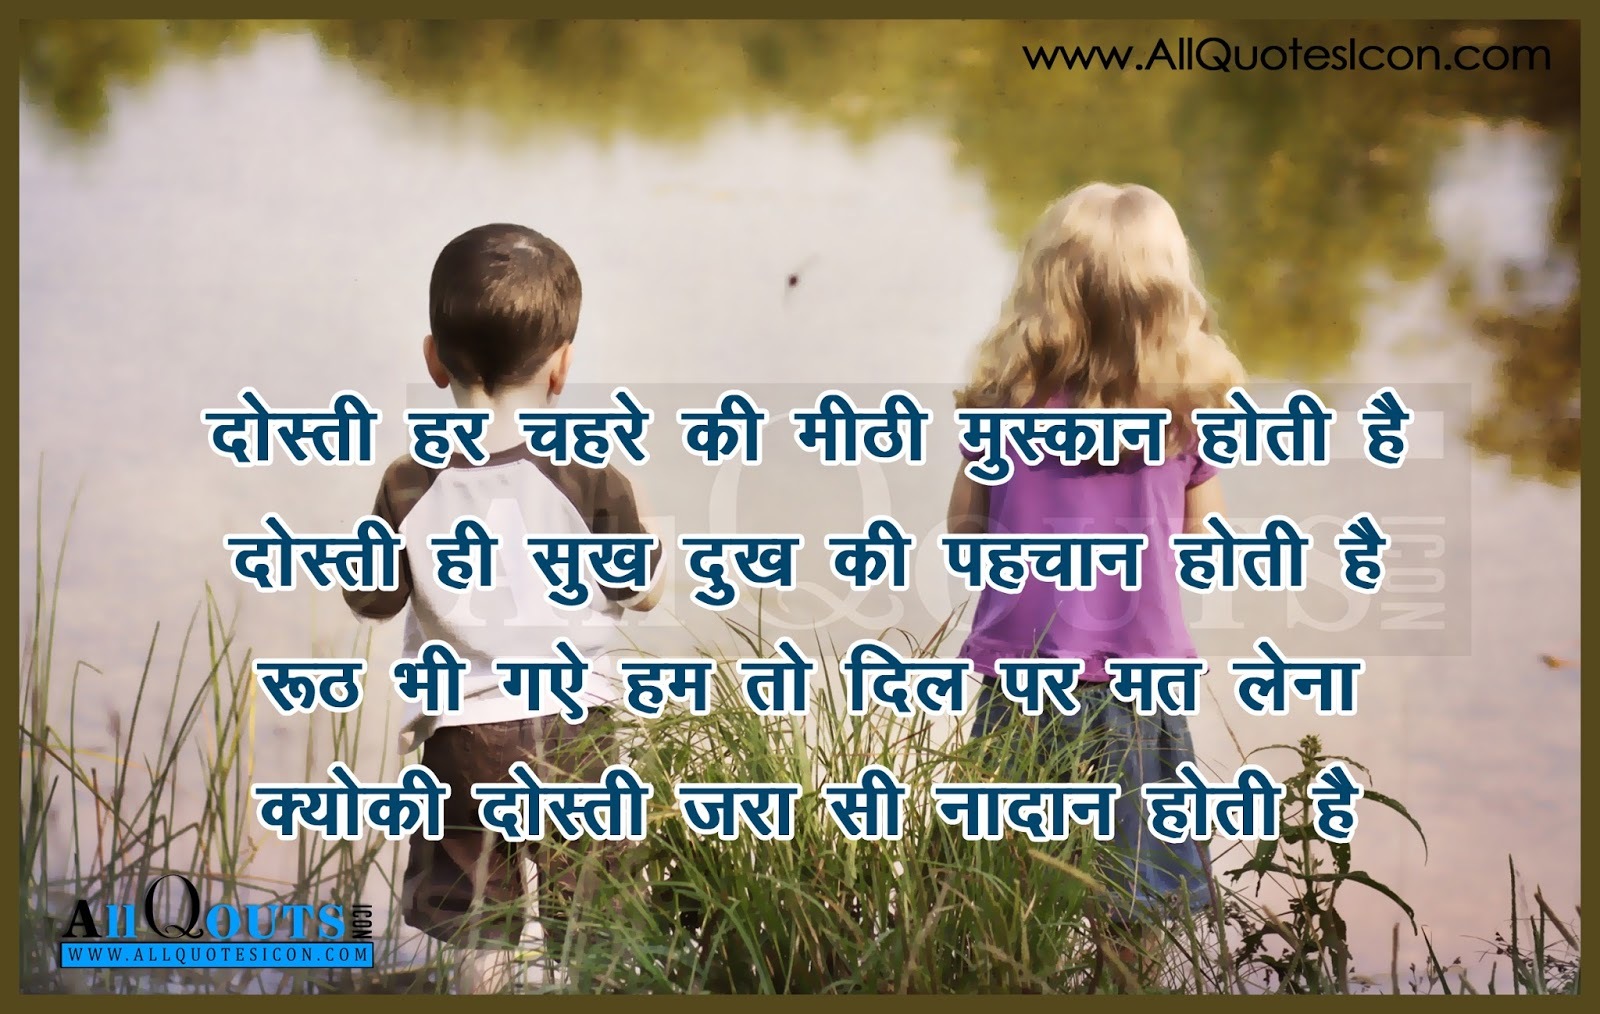 Quotes About Love And Friendship In Hindi : in Hindi HD Wallpapers Best Thoughts and Sayings Friendship Hindi ...